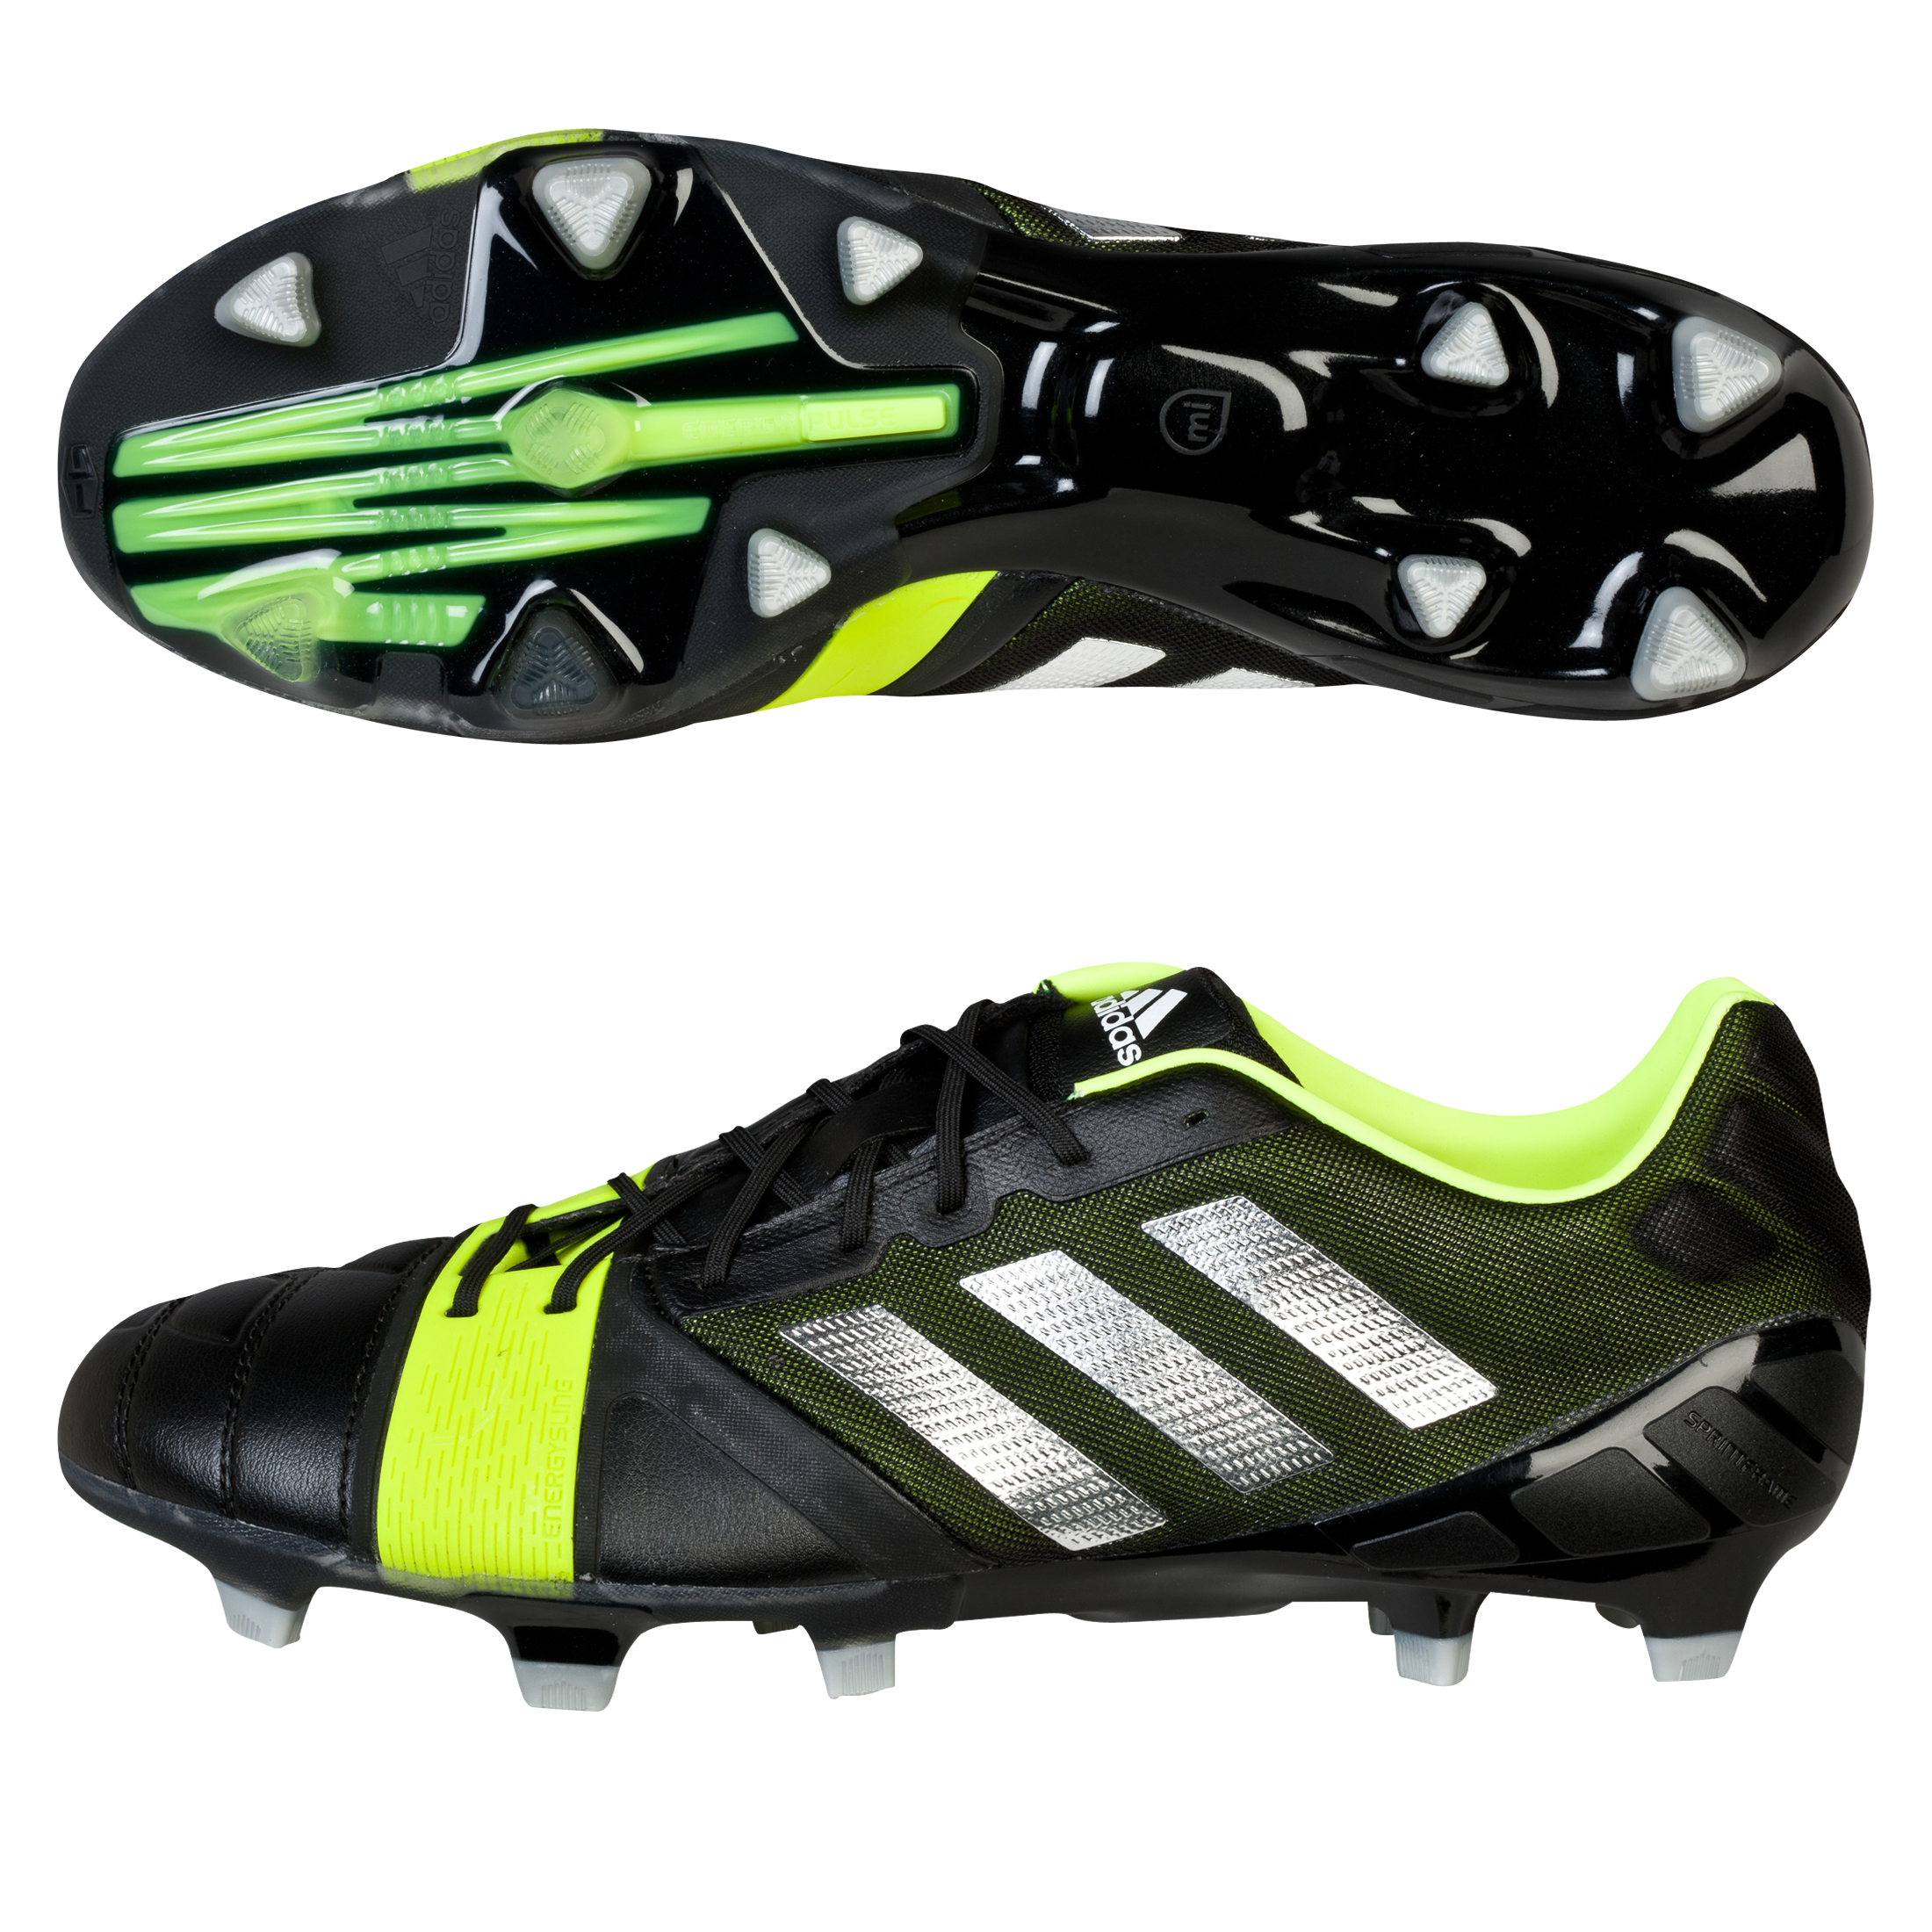 Adidas Nitrocharge 1.0 TRX Firm Ground Football Boots Black